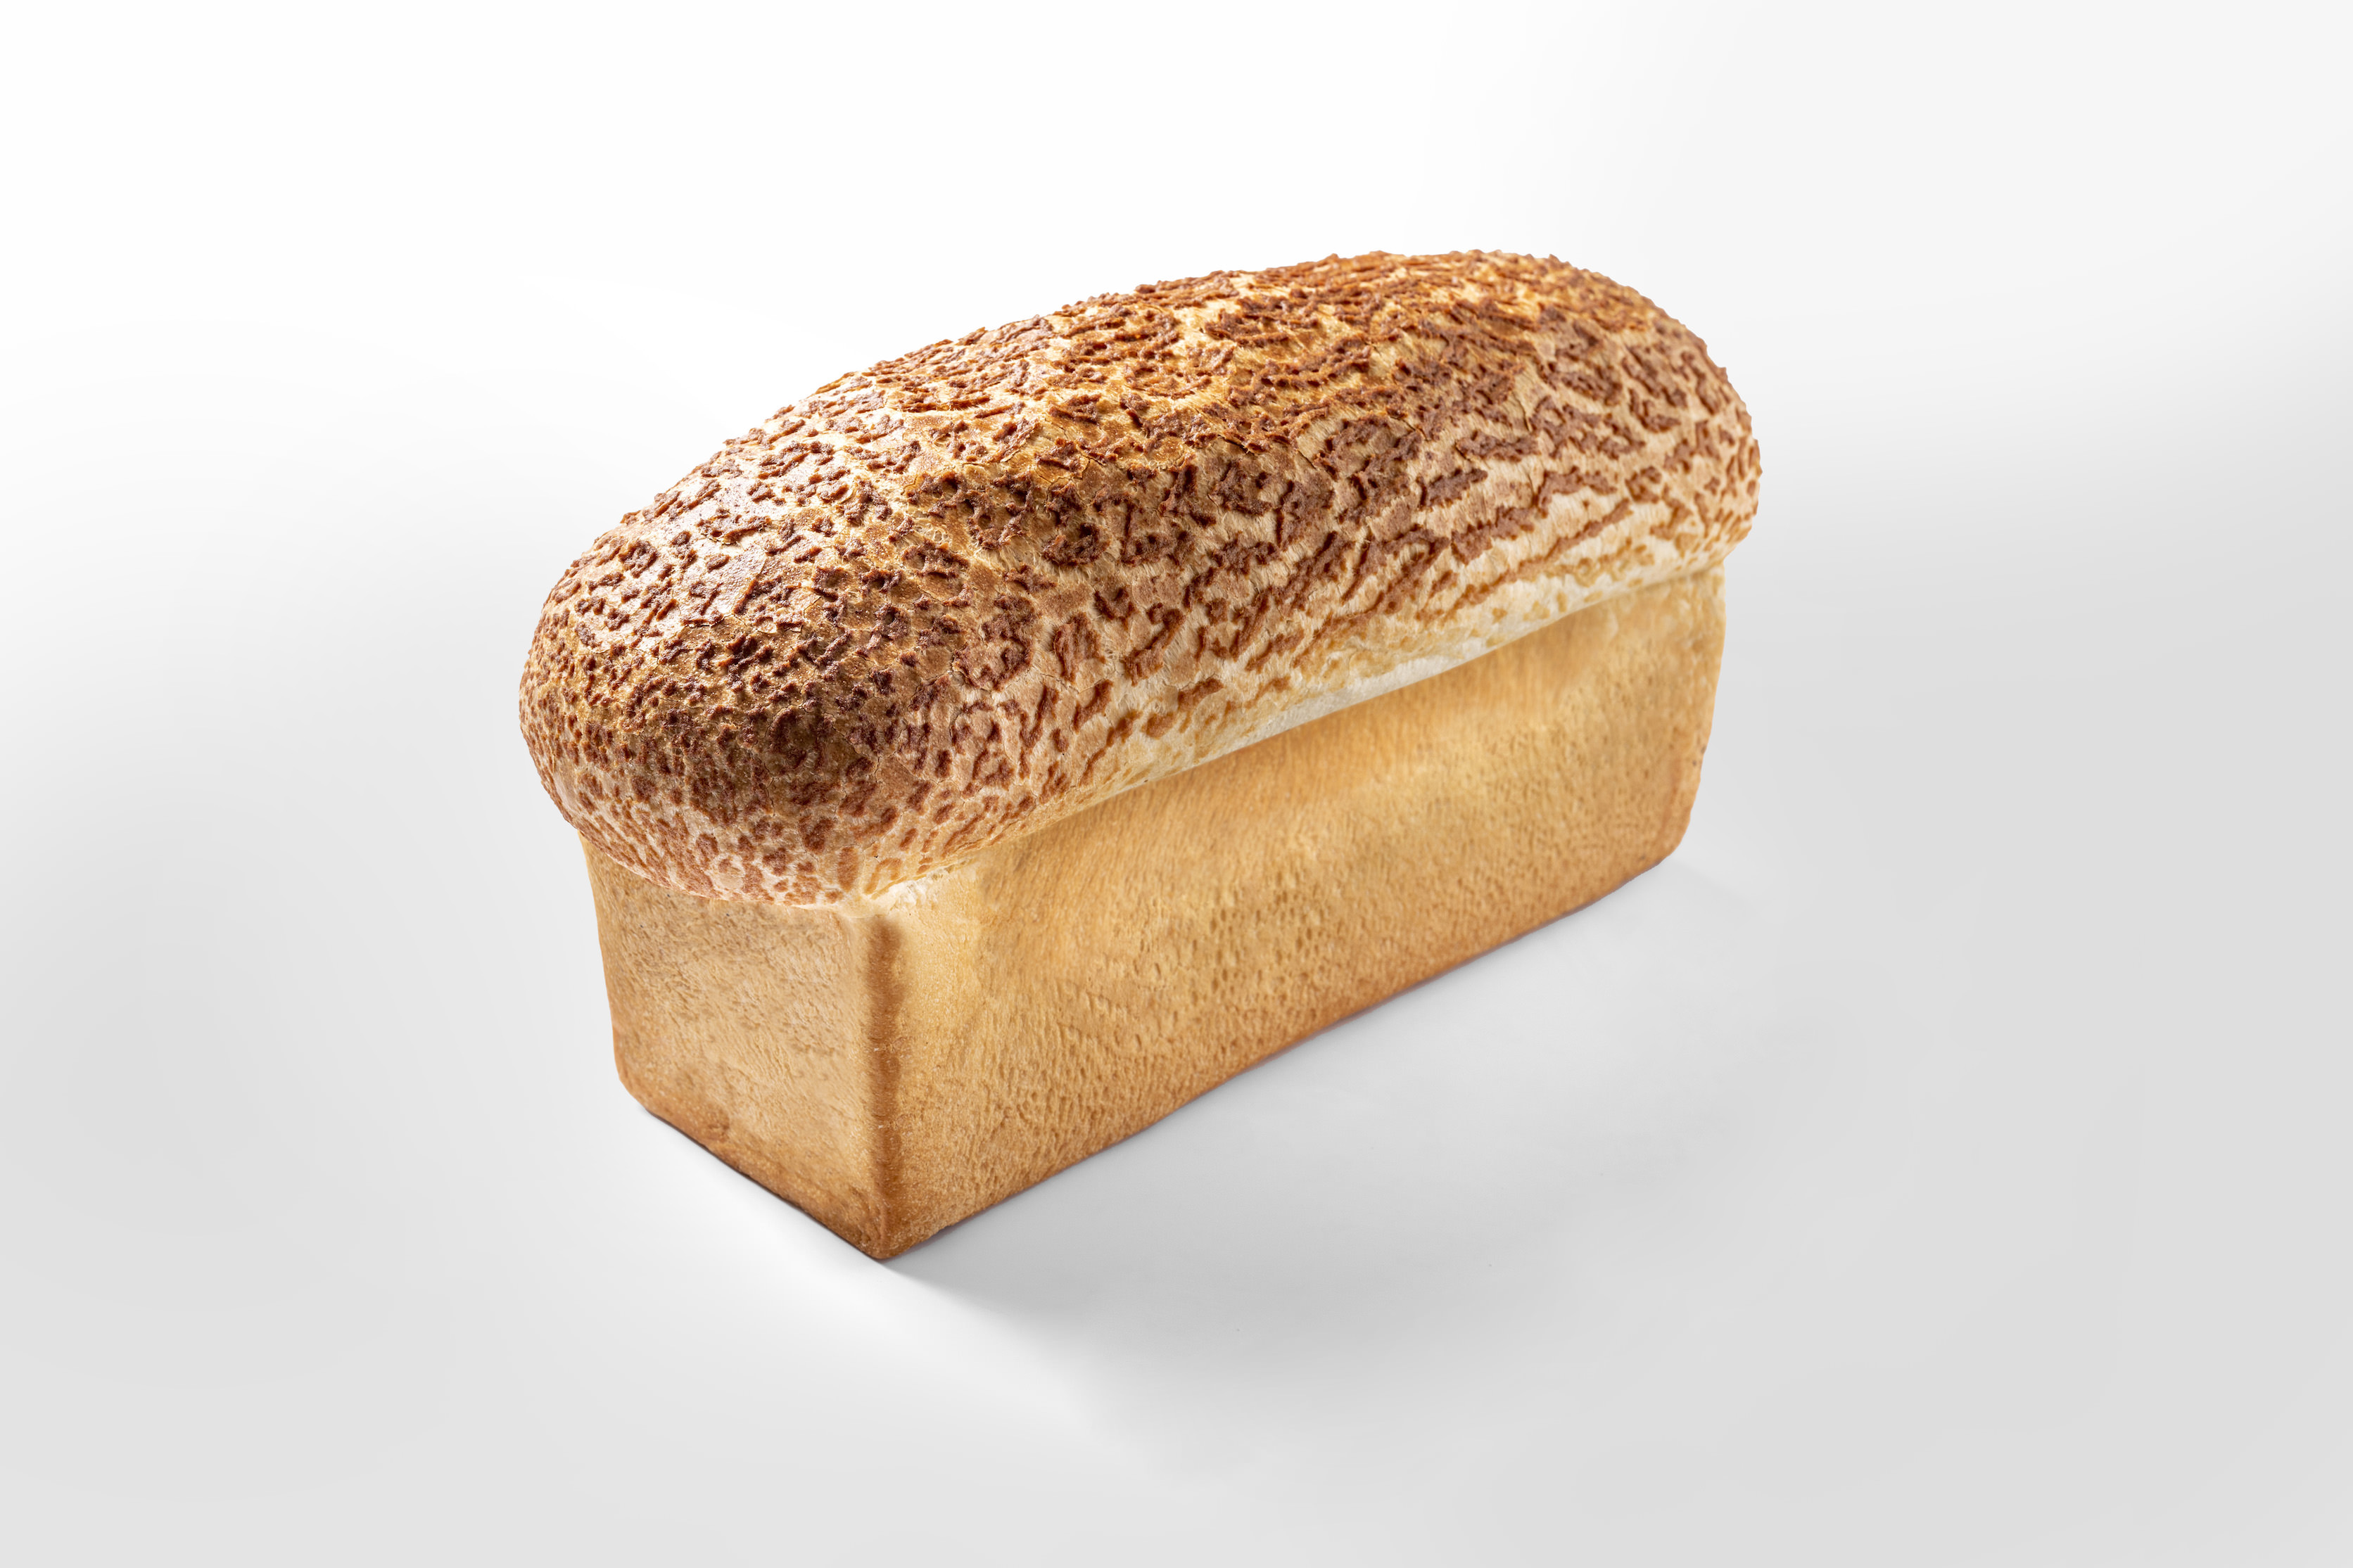 Tiger bread made with FoodJet depositing technology